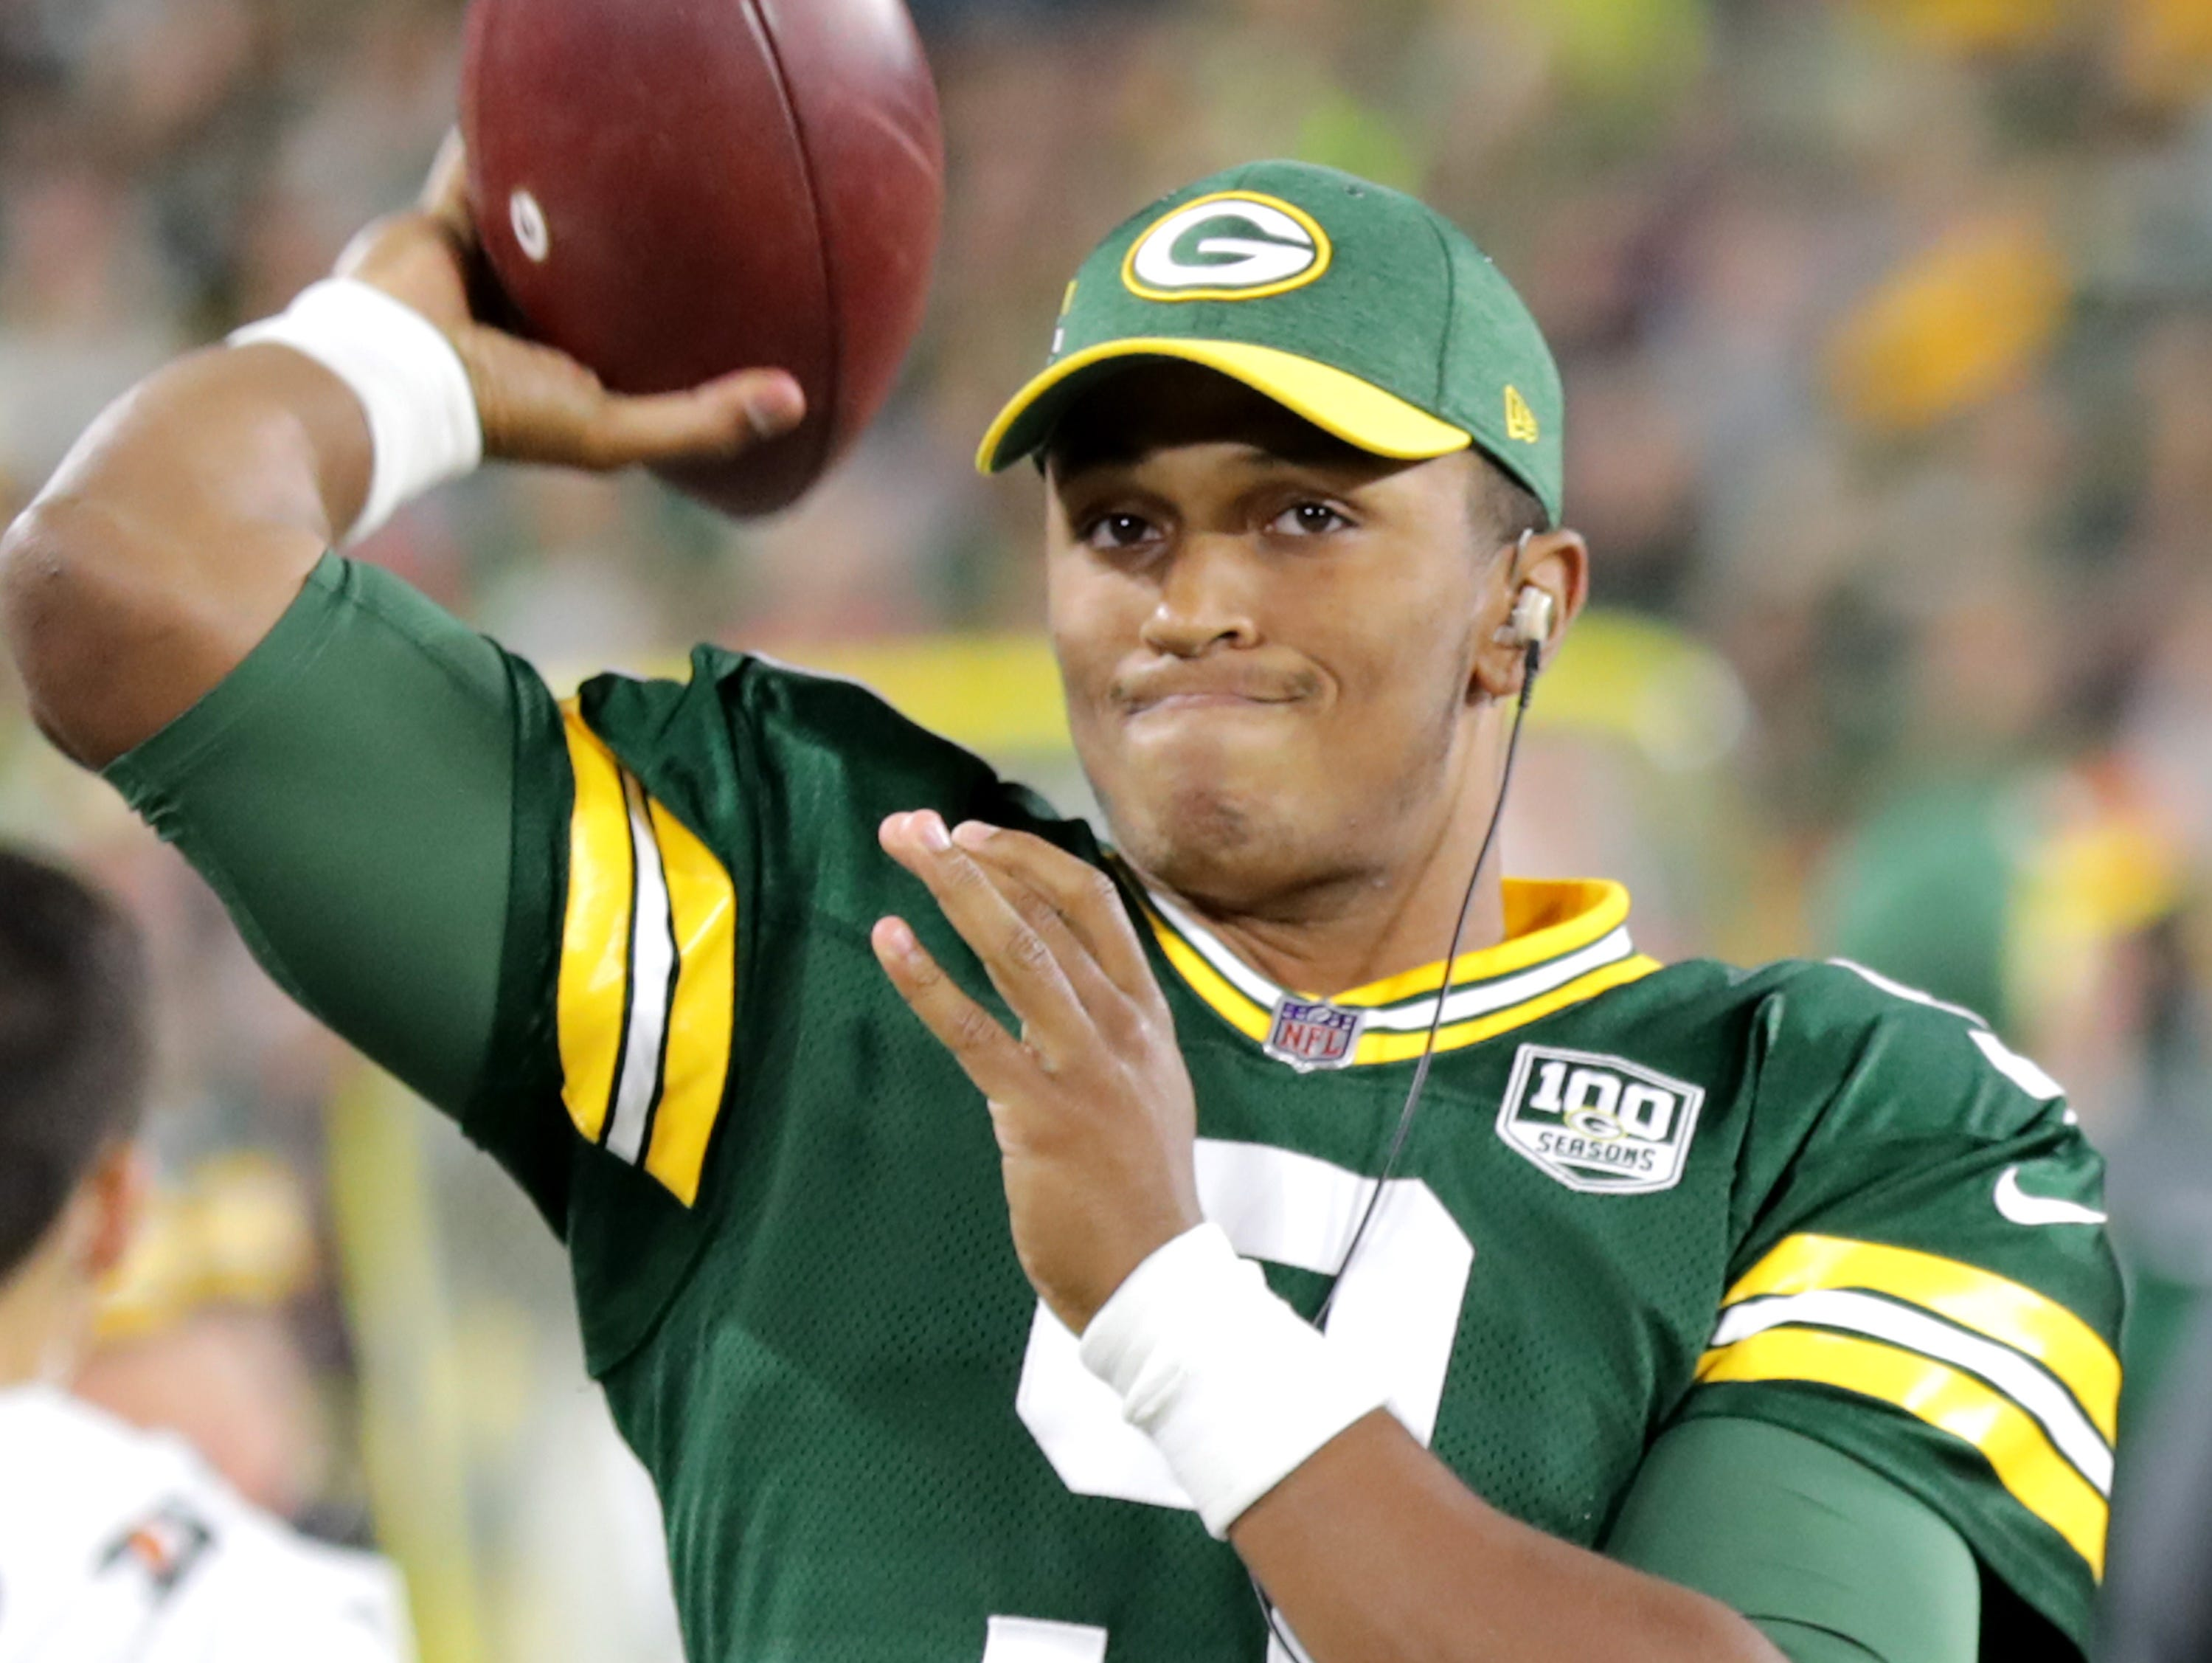 Green Bay Packers' DeShone Kizer warms up atewr Aaron Rodgers was carted of the field following a second quarter injury against the Chicago Bears in the season opener on Sunday, September 9, 2018, at Lambeau Field in Green Bay, Wis.